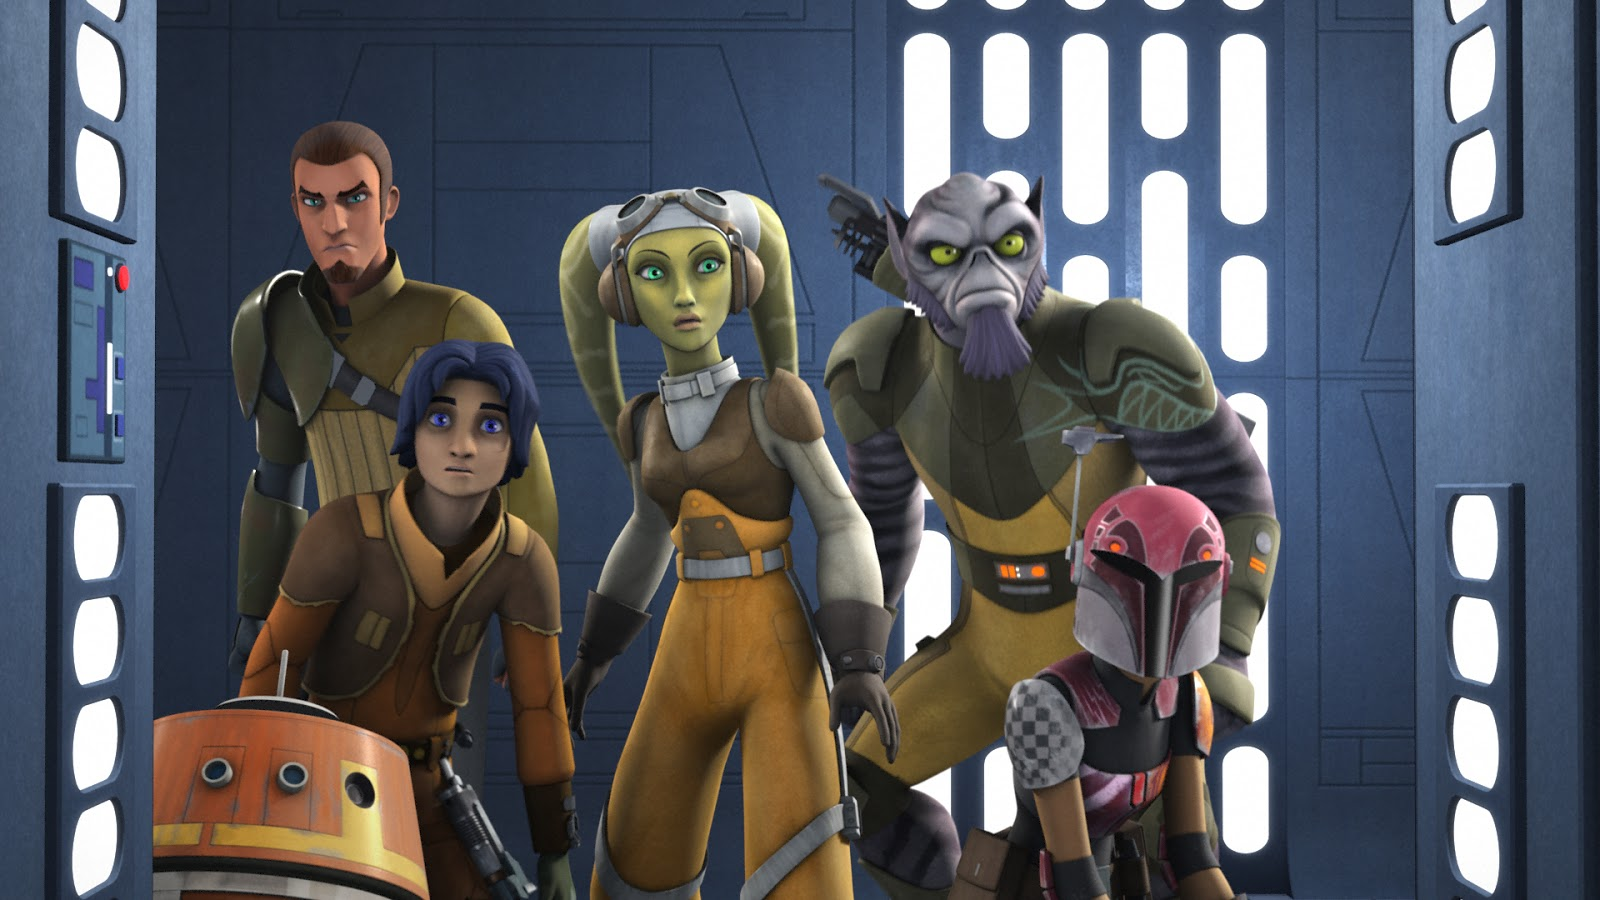 Tv With Thinus Star Wars Rebels Cancelled Upcoming 4th Season The Last On Disney Xd Final 15 Episodes Will Be Darker In Tone